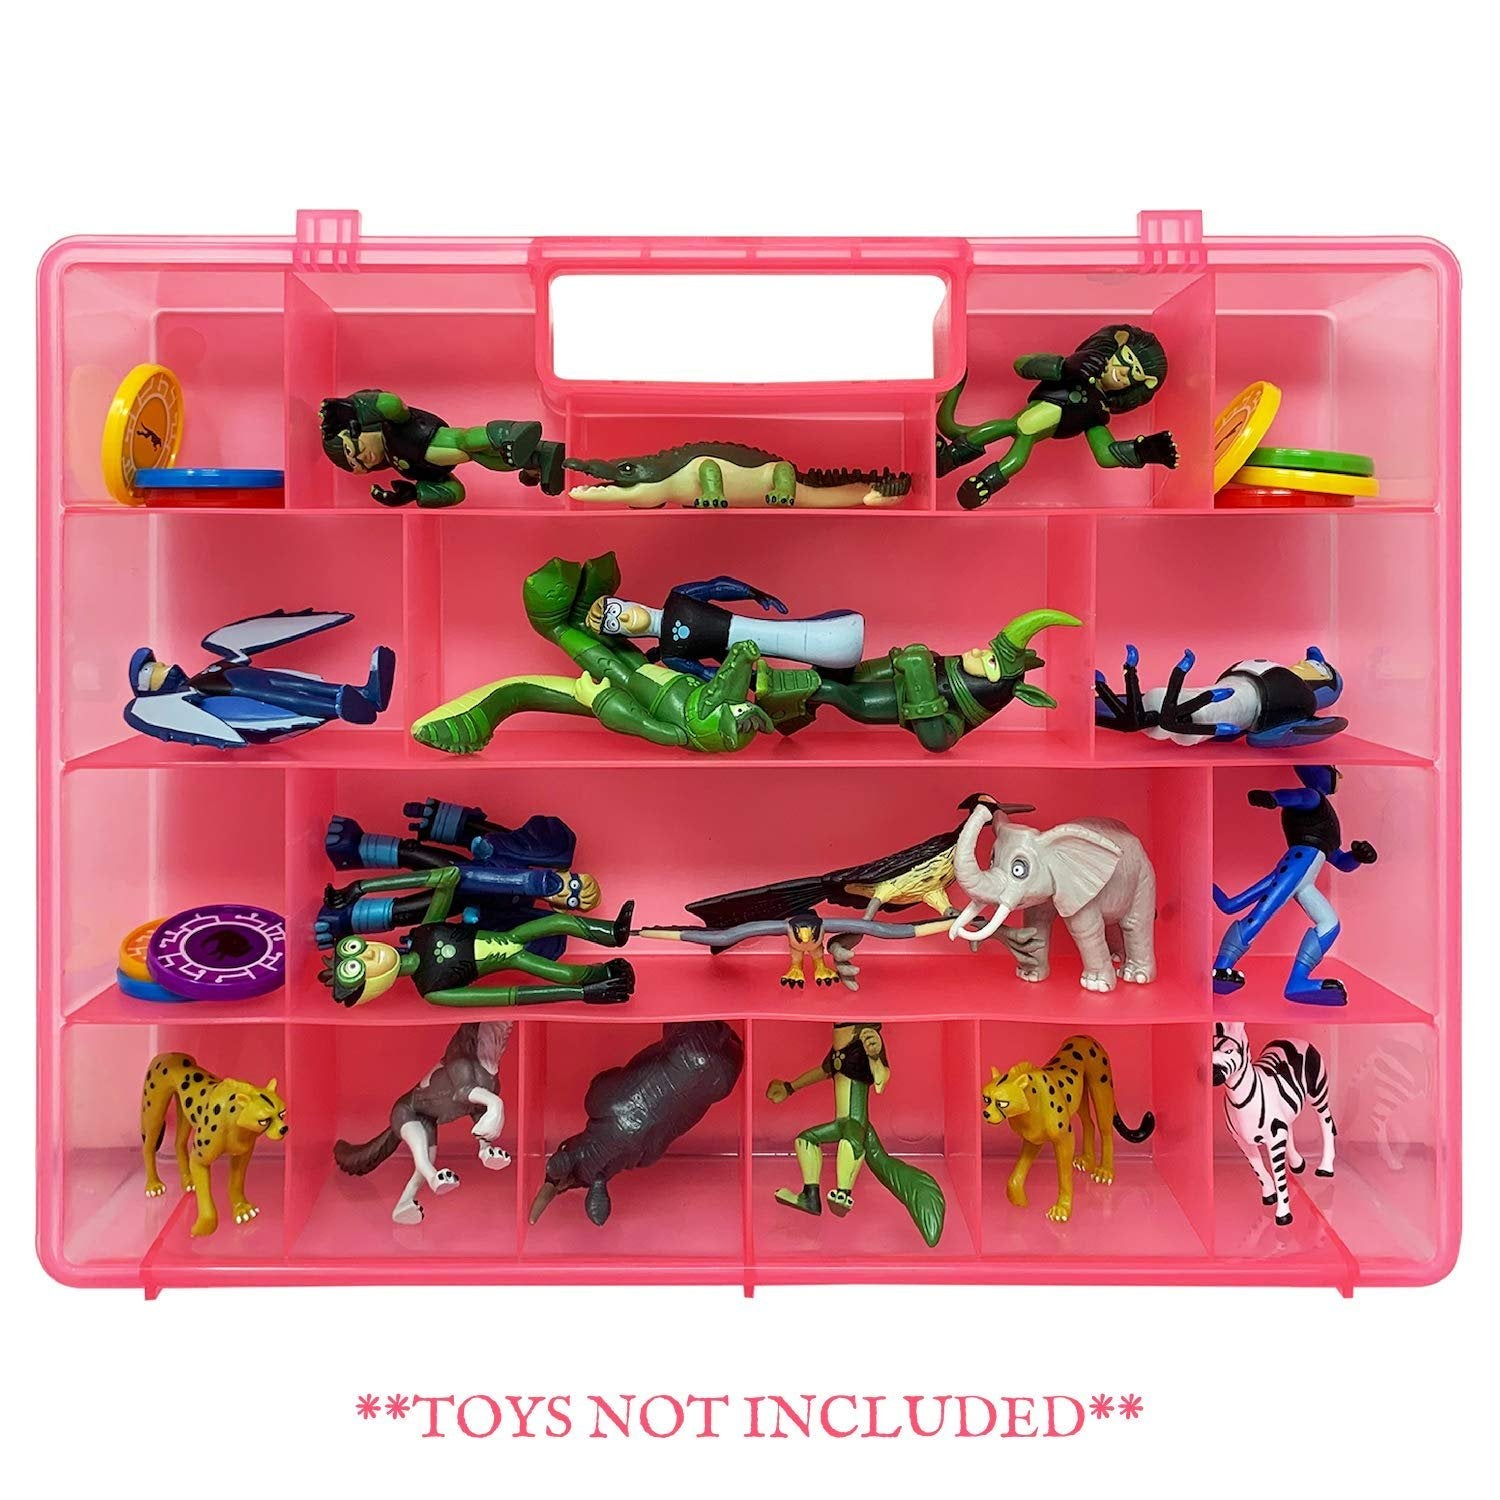 Life Made Better, Pink Toy Carrying Case Compatible with Wild Kratts Figurines. Durable, Long-Lasting Toy Storage Box, not Made by Wild Kratts, Created by LMB